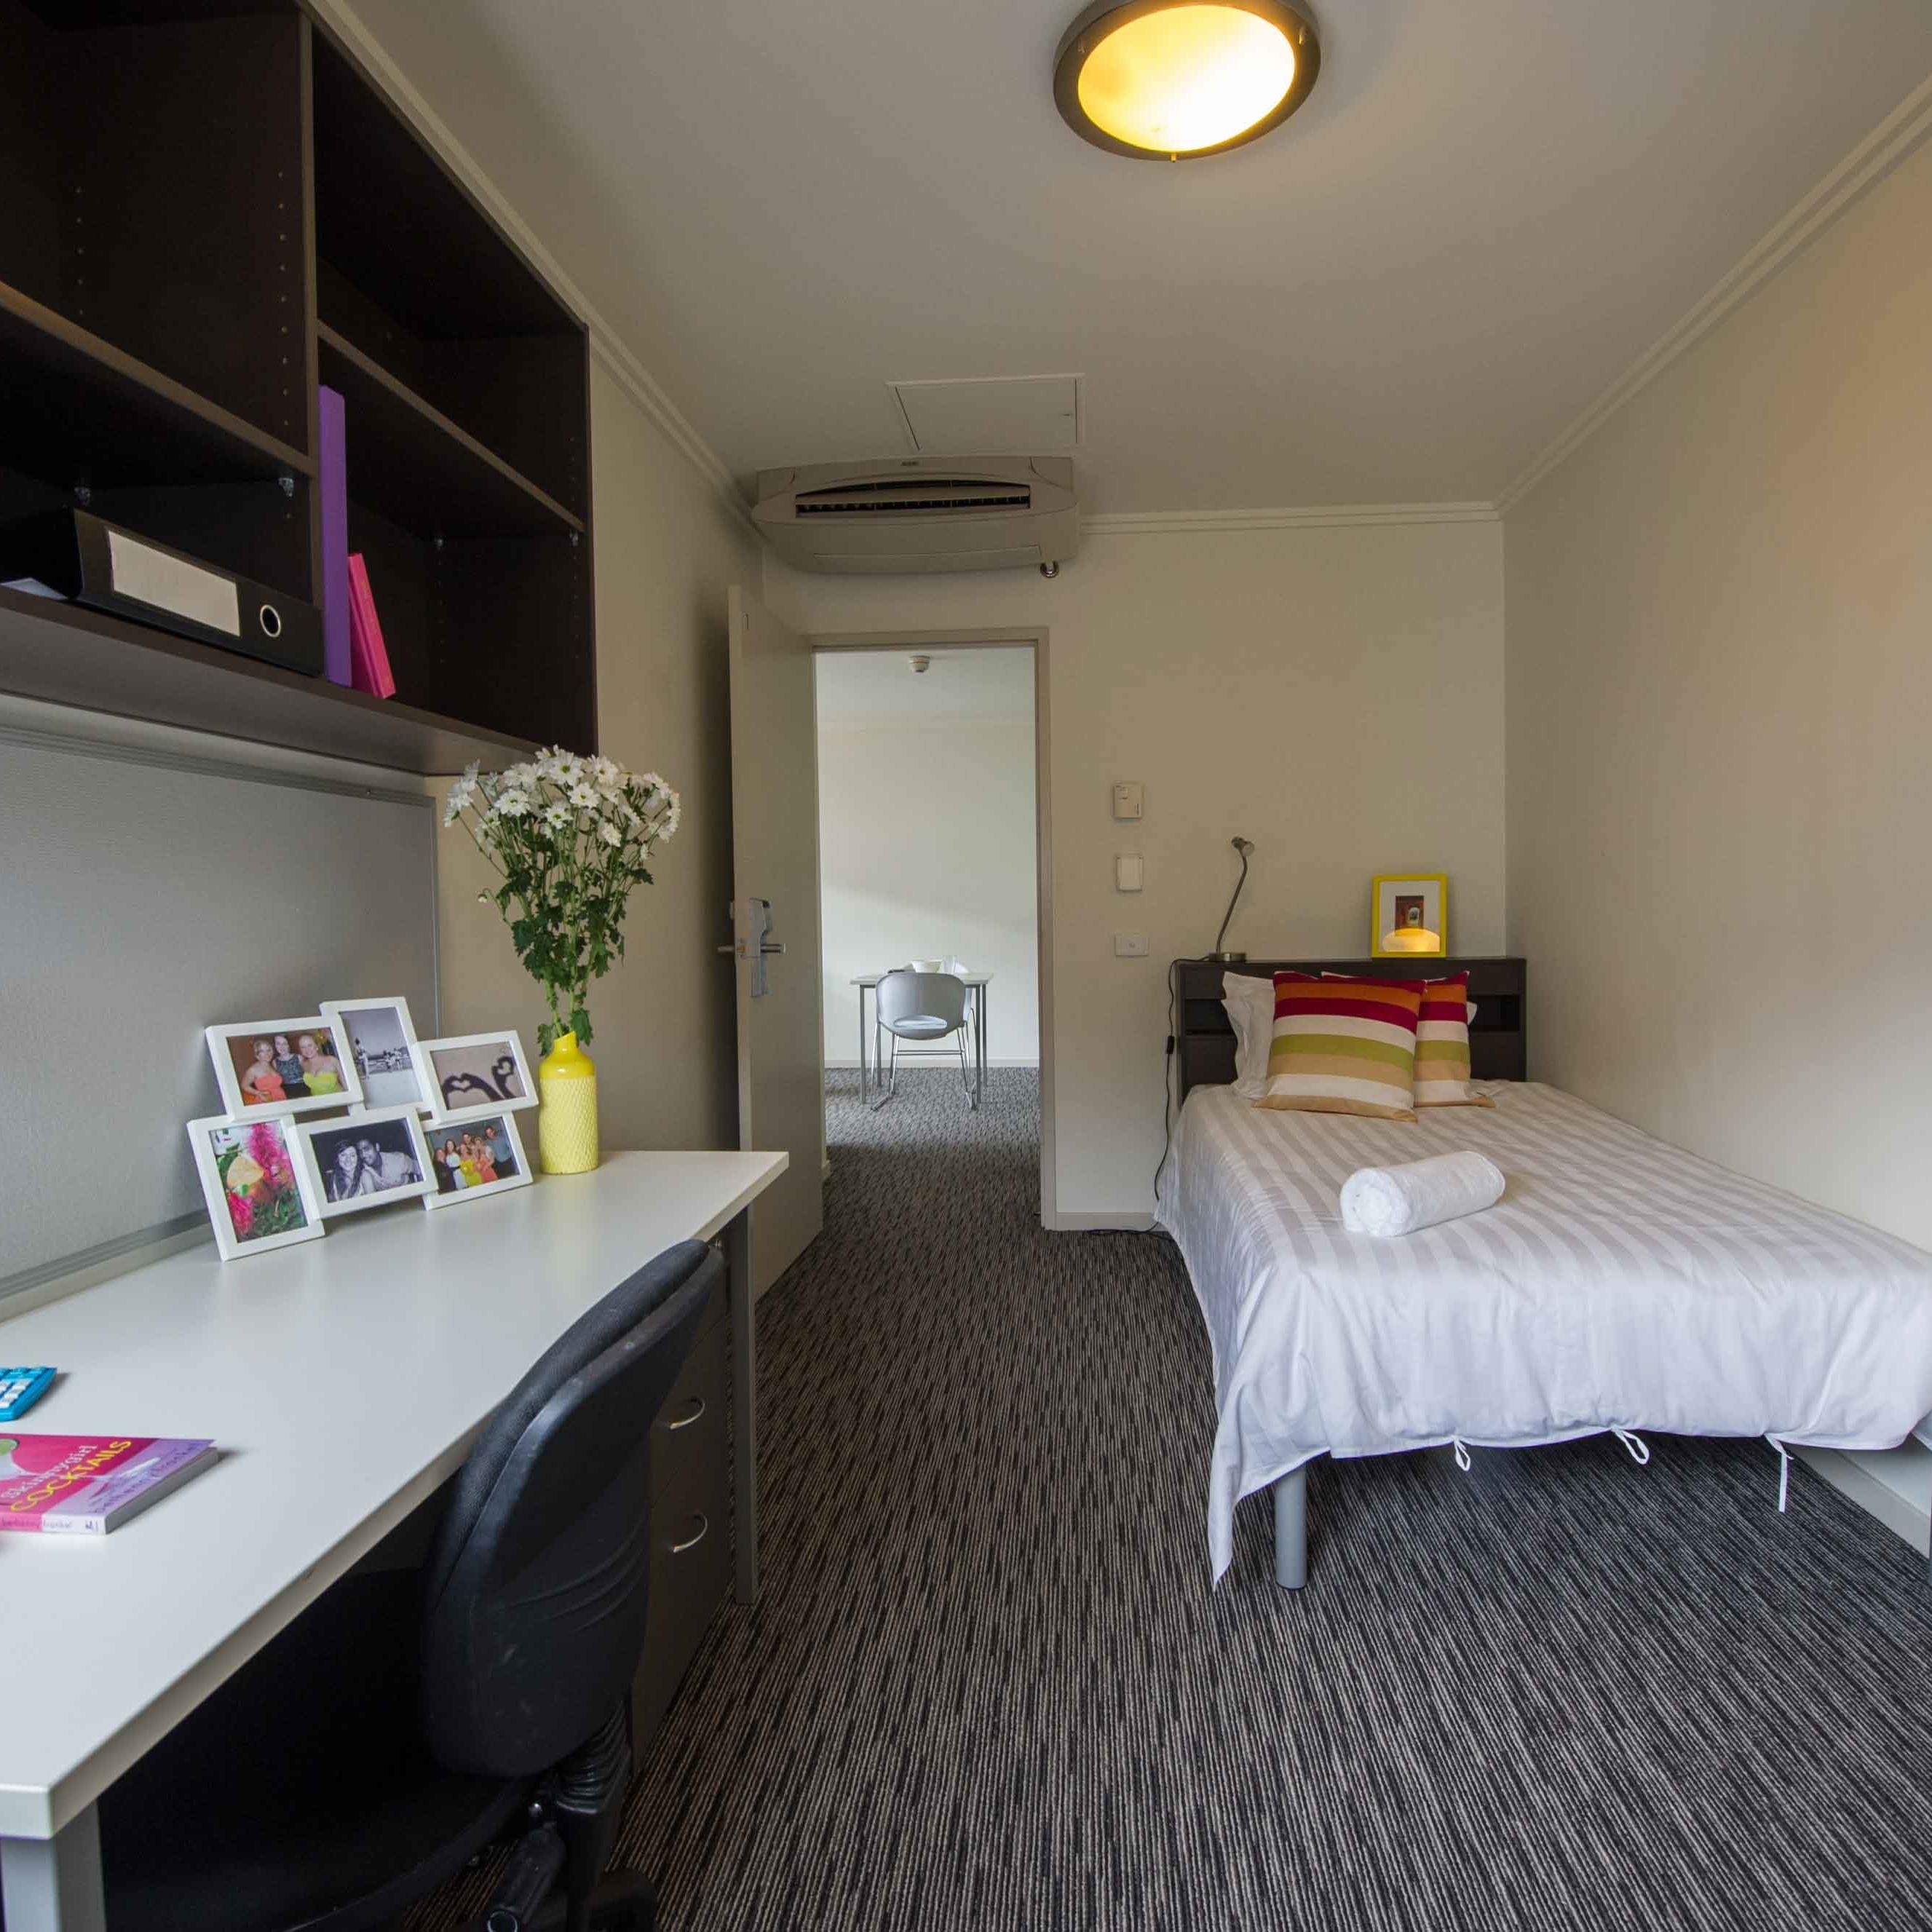 2 Bedroom Accommodation Canberra Student Accommodation Canberra Unilodge Kinloch Lodge Anu